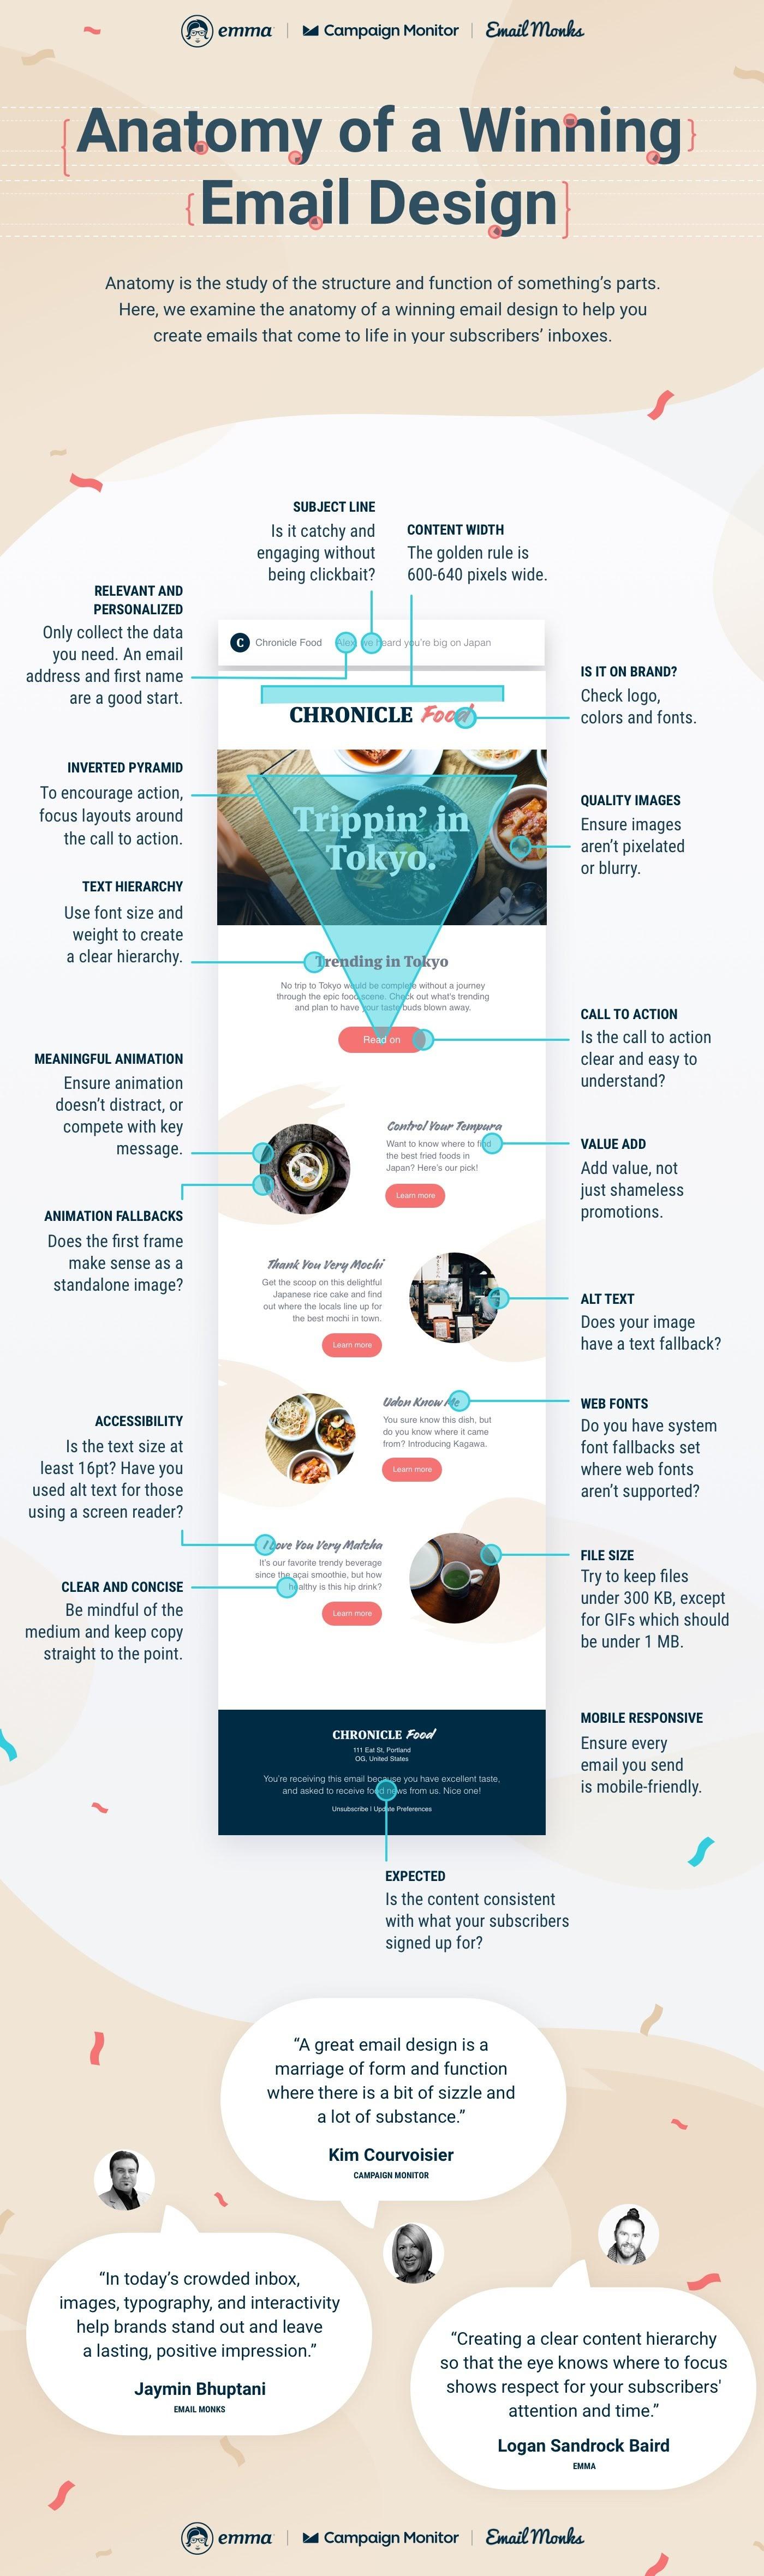 Anatomy of a Winning Email Design - #infographic